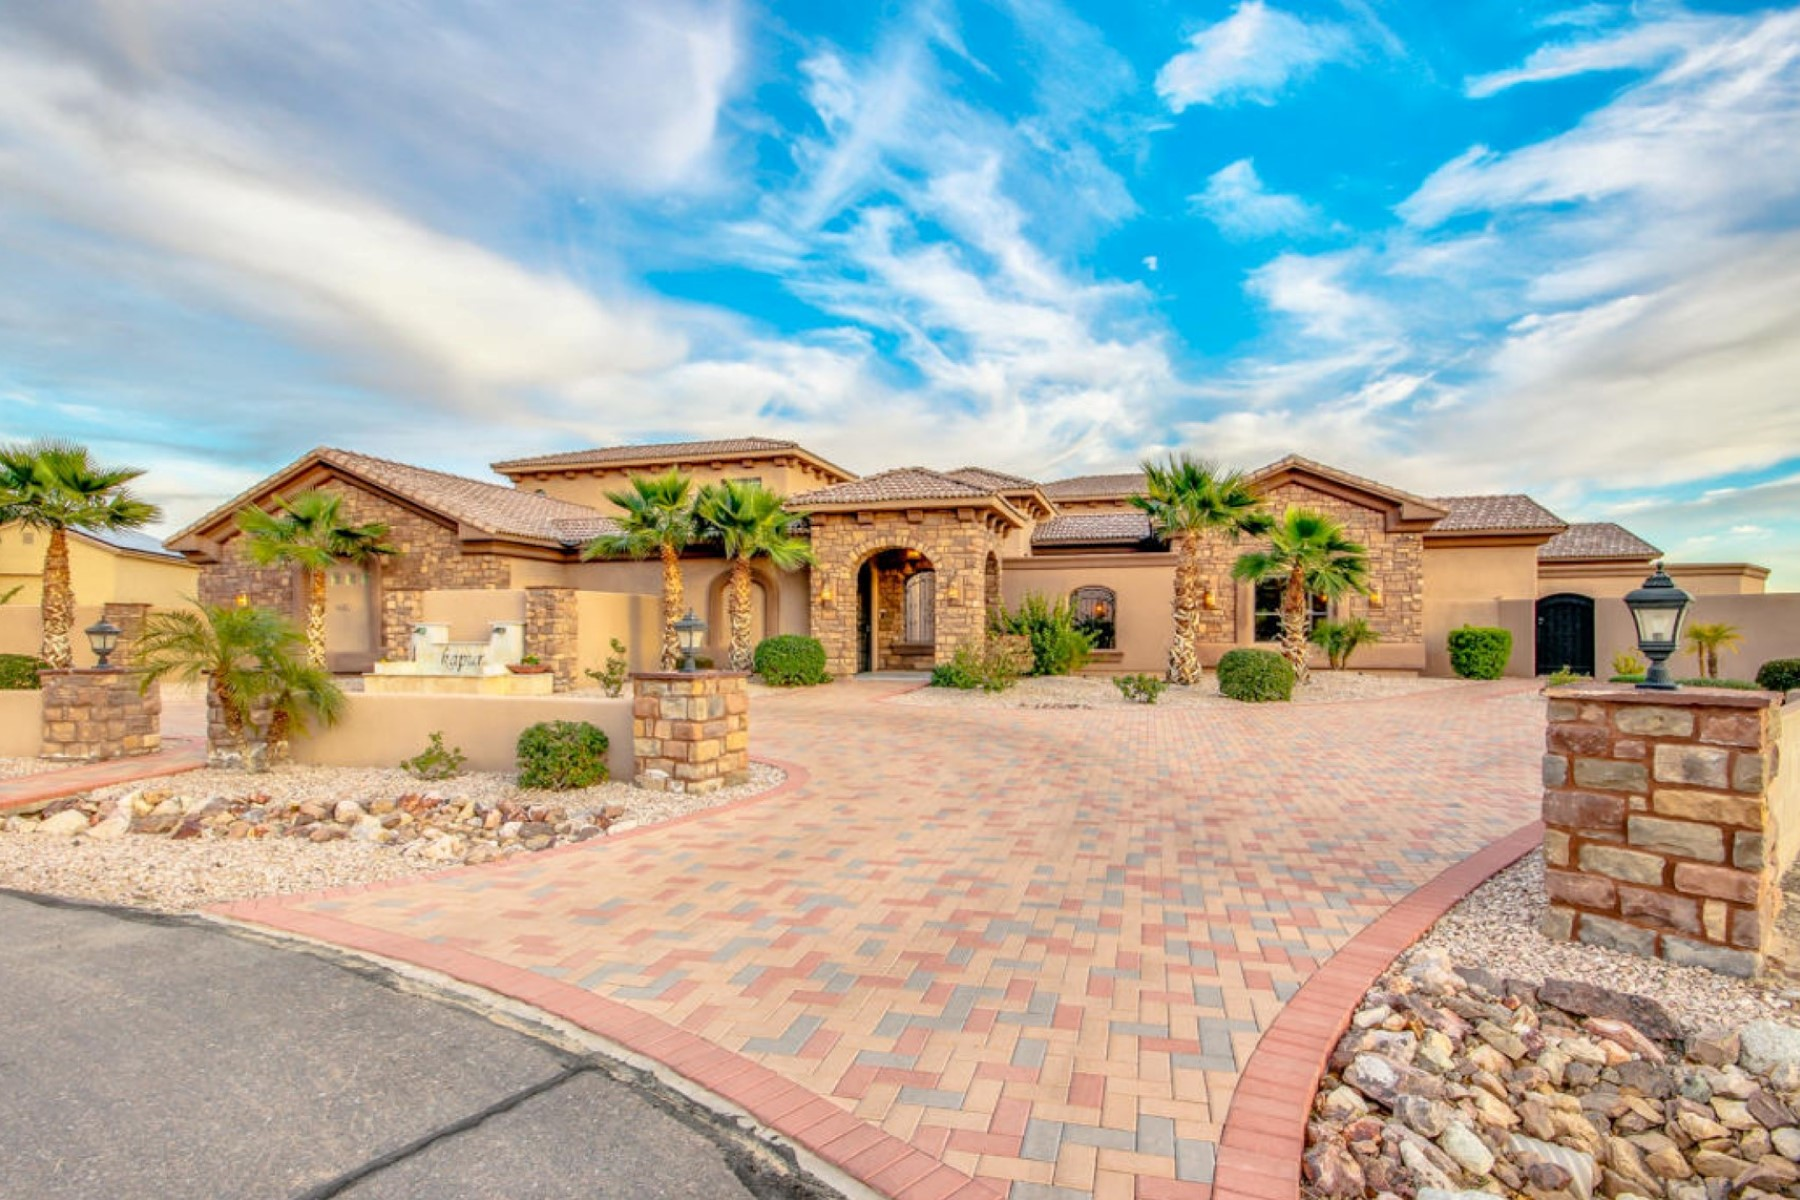 Single Family Home for Sale at Elegance & Beautiful Views In This Impressive Estate Will Take Your Breath Away 203 N 179th Drive Litchfield Park, Arizona, 85340 United States